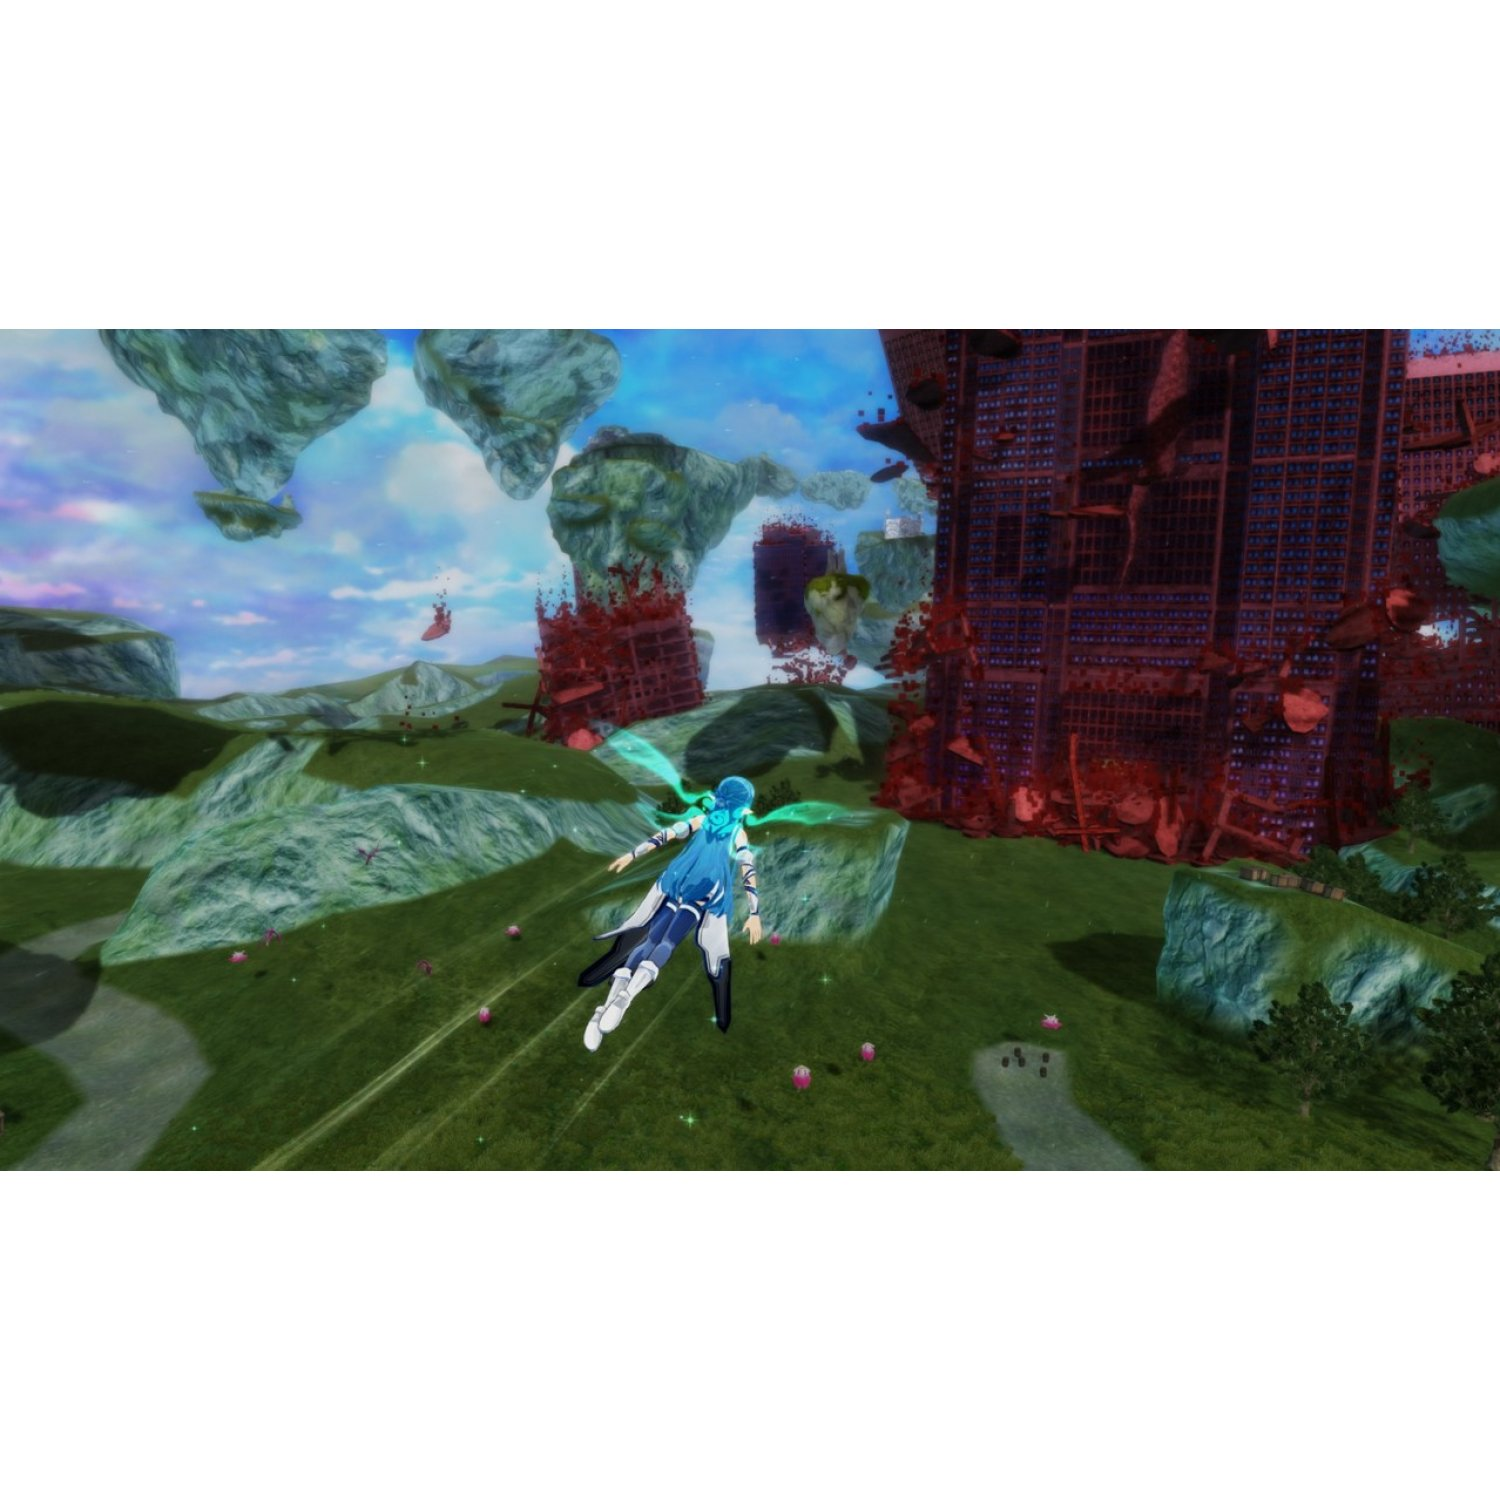 Joc Accel World vs Sword Art Online PS4 2